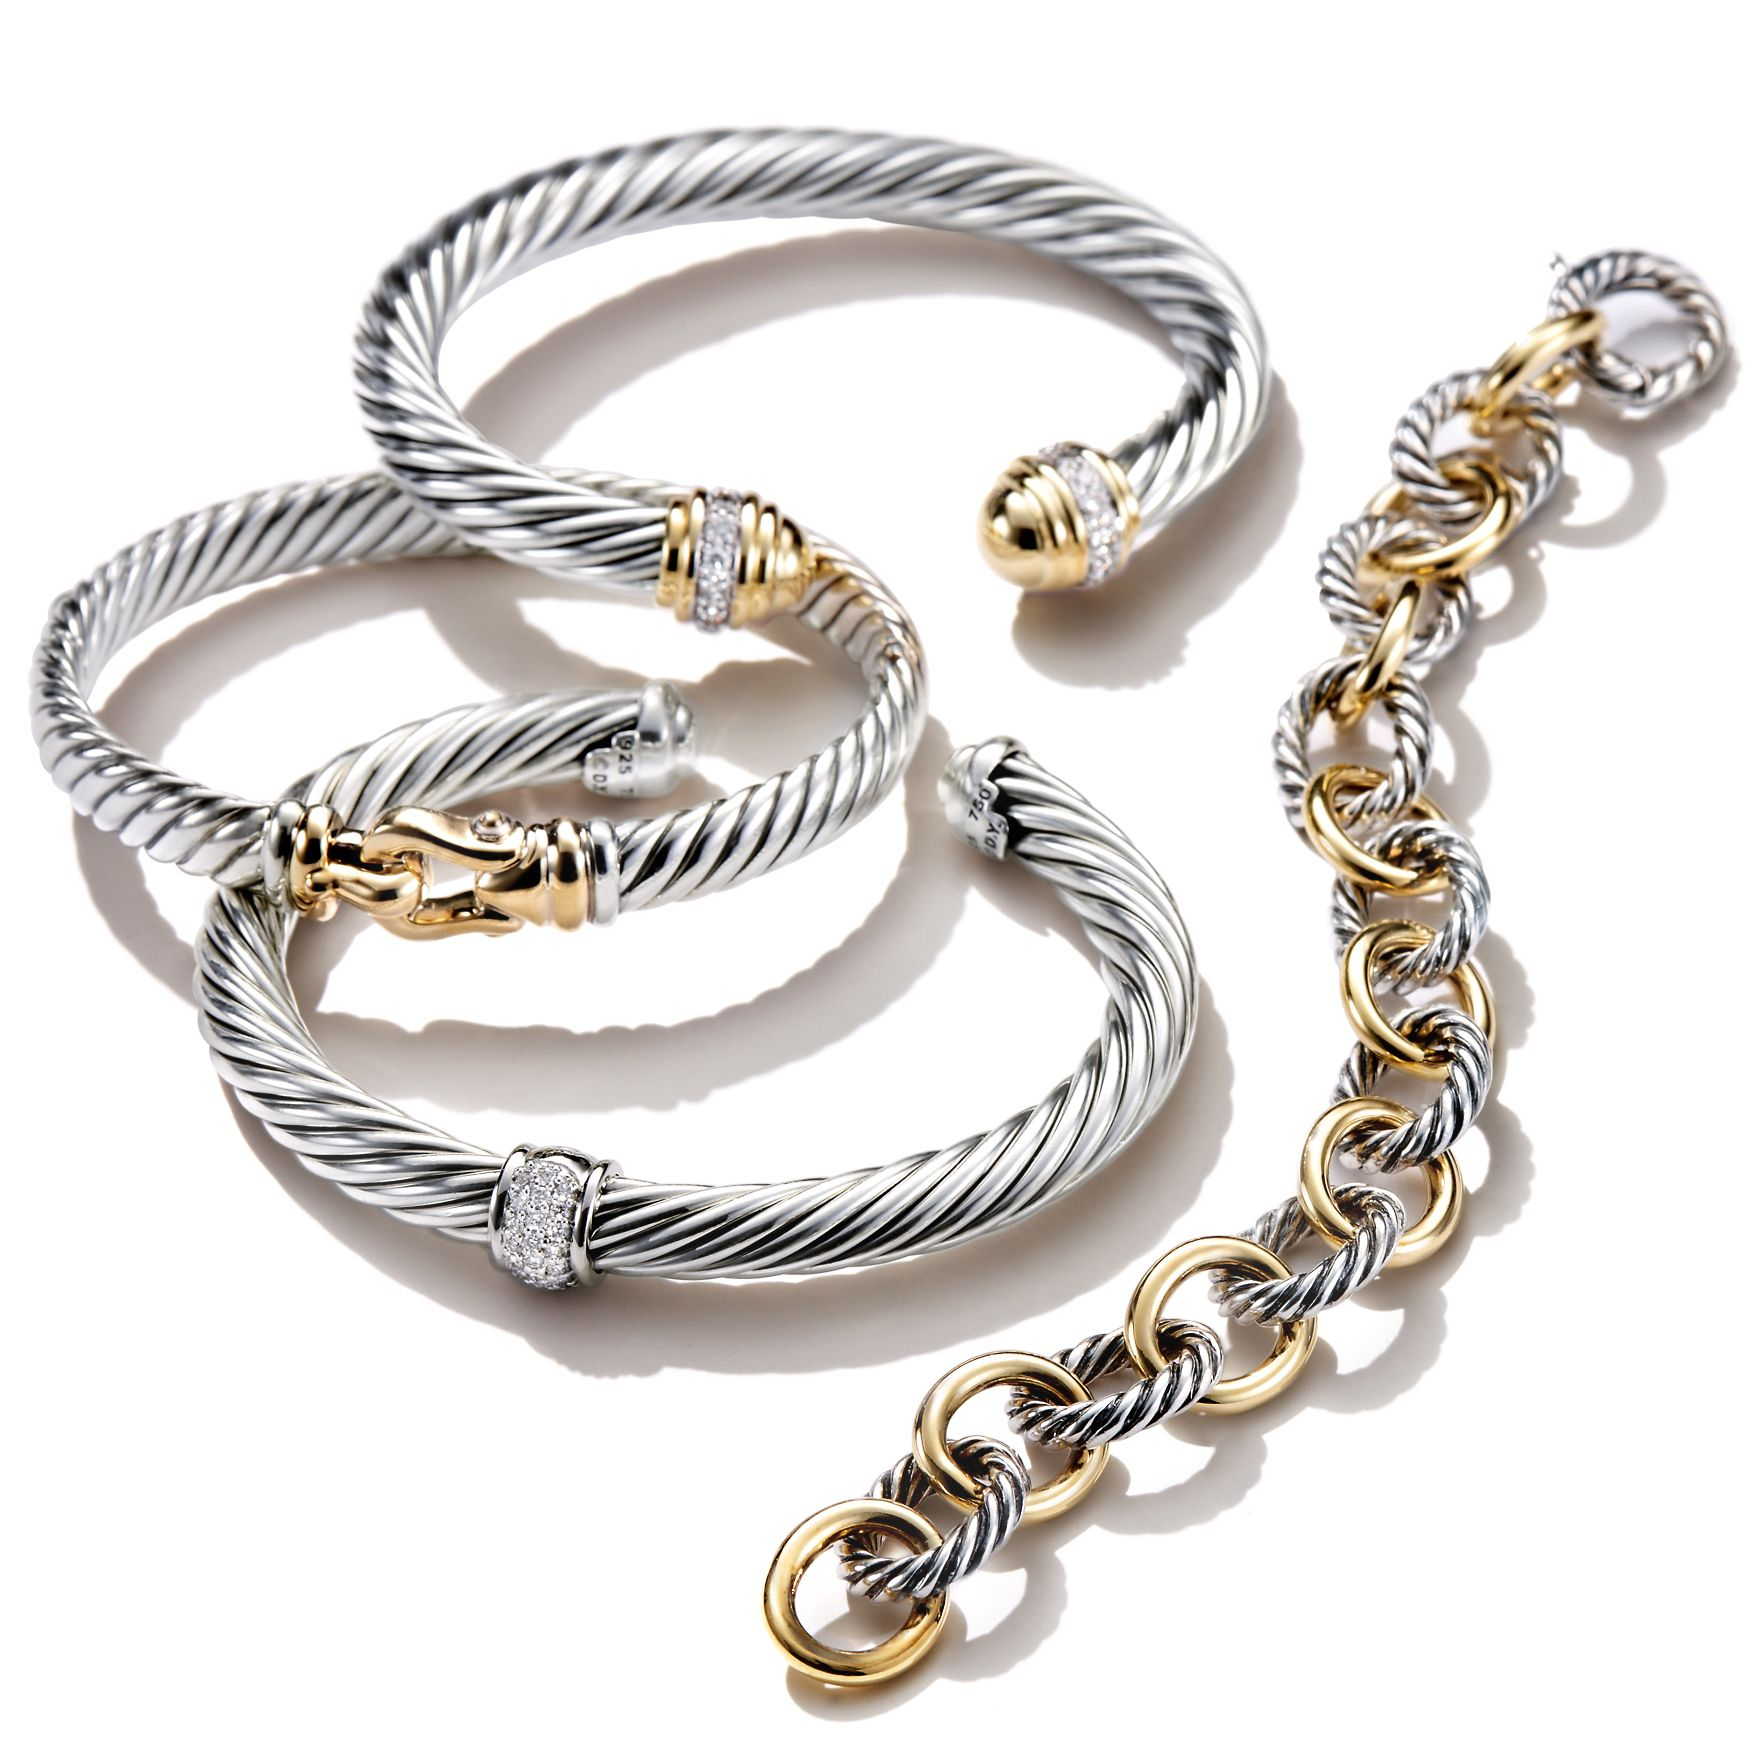 David Yurman Bracelets Are Designed To Layer And Stack Together Beautifully